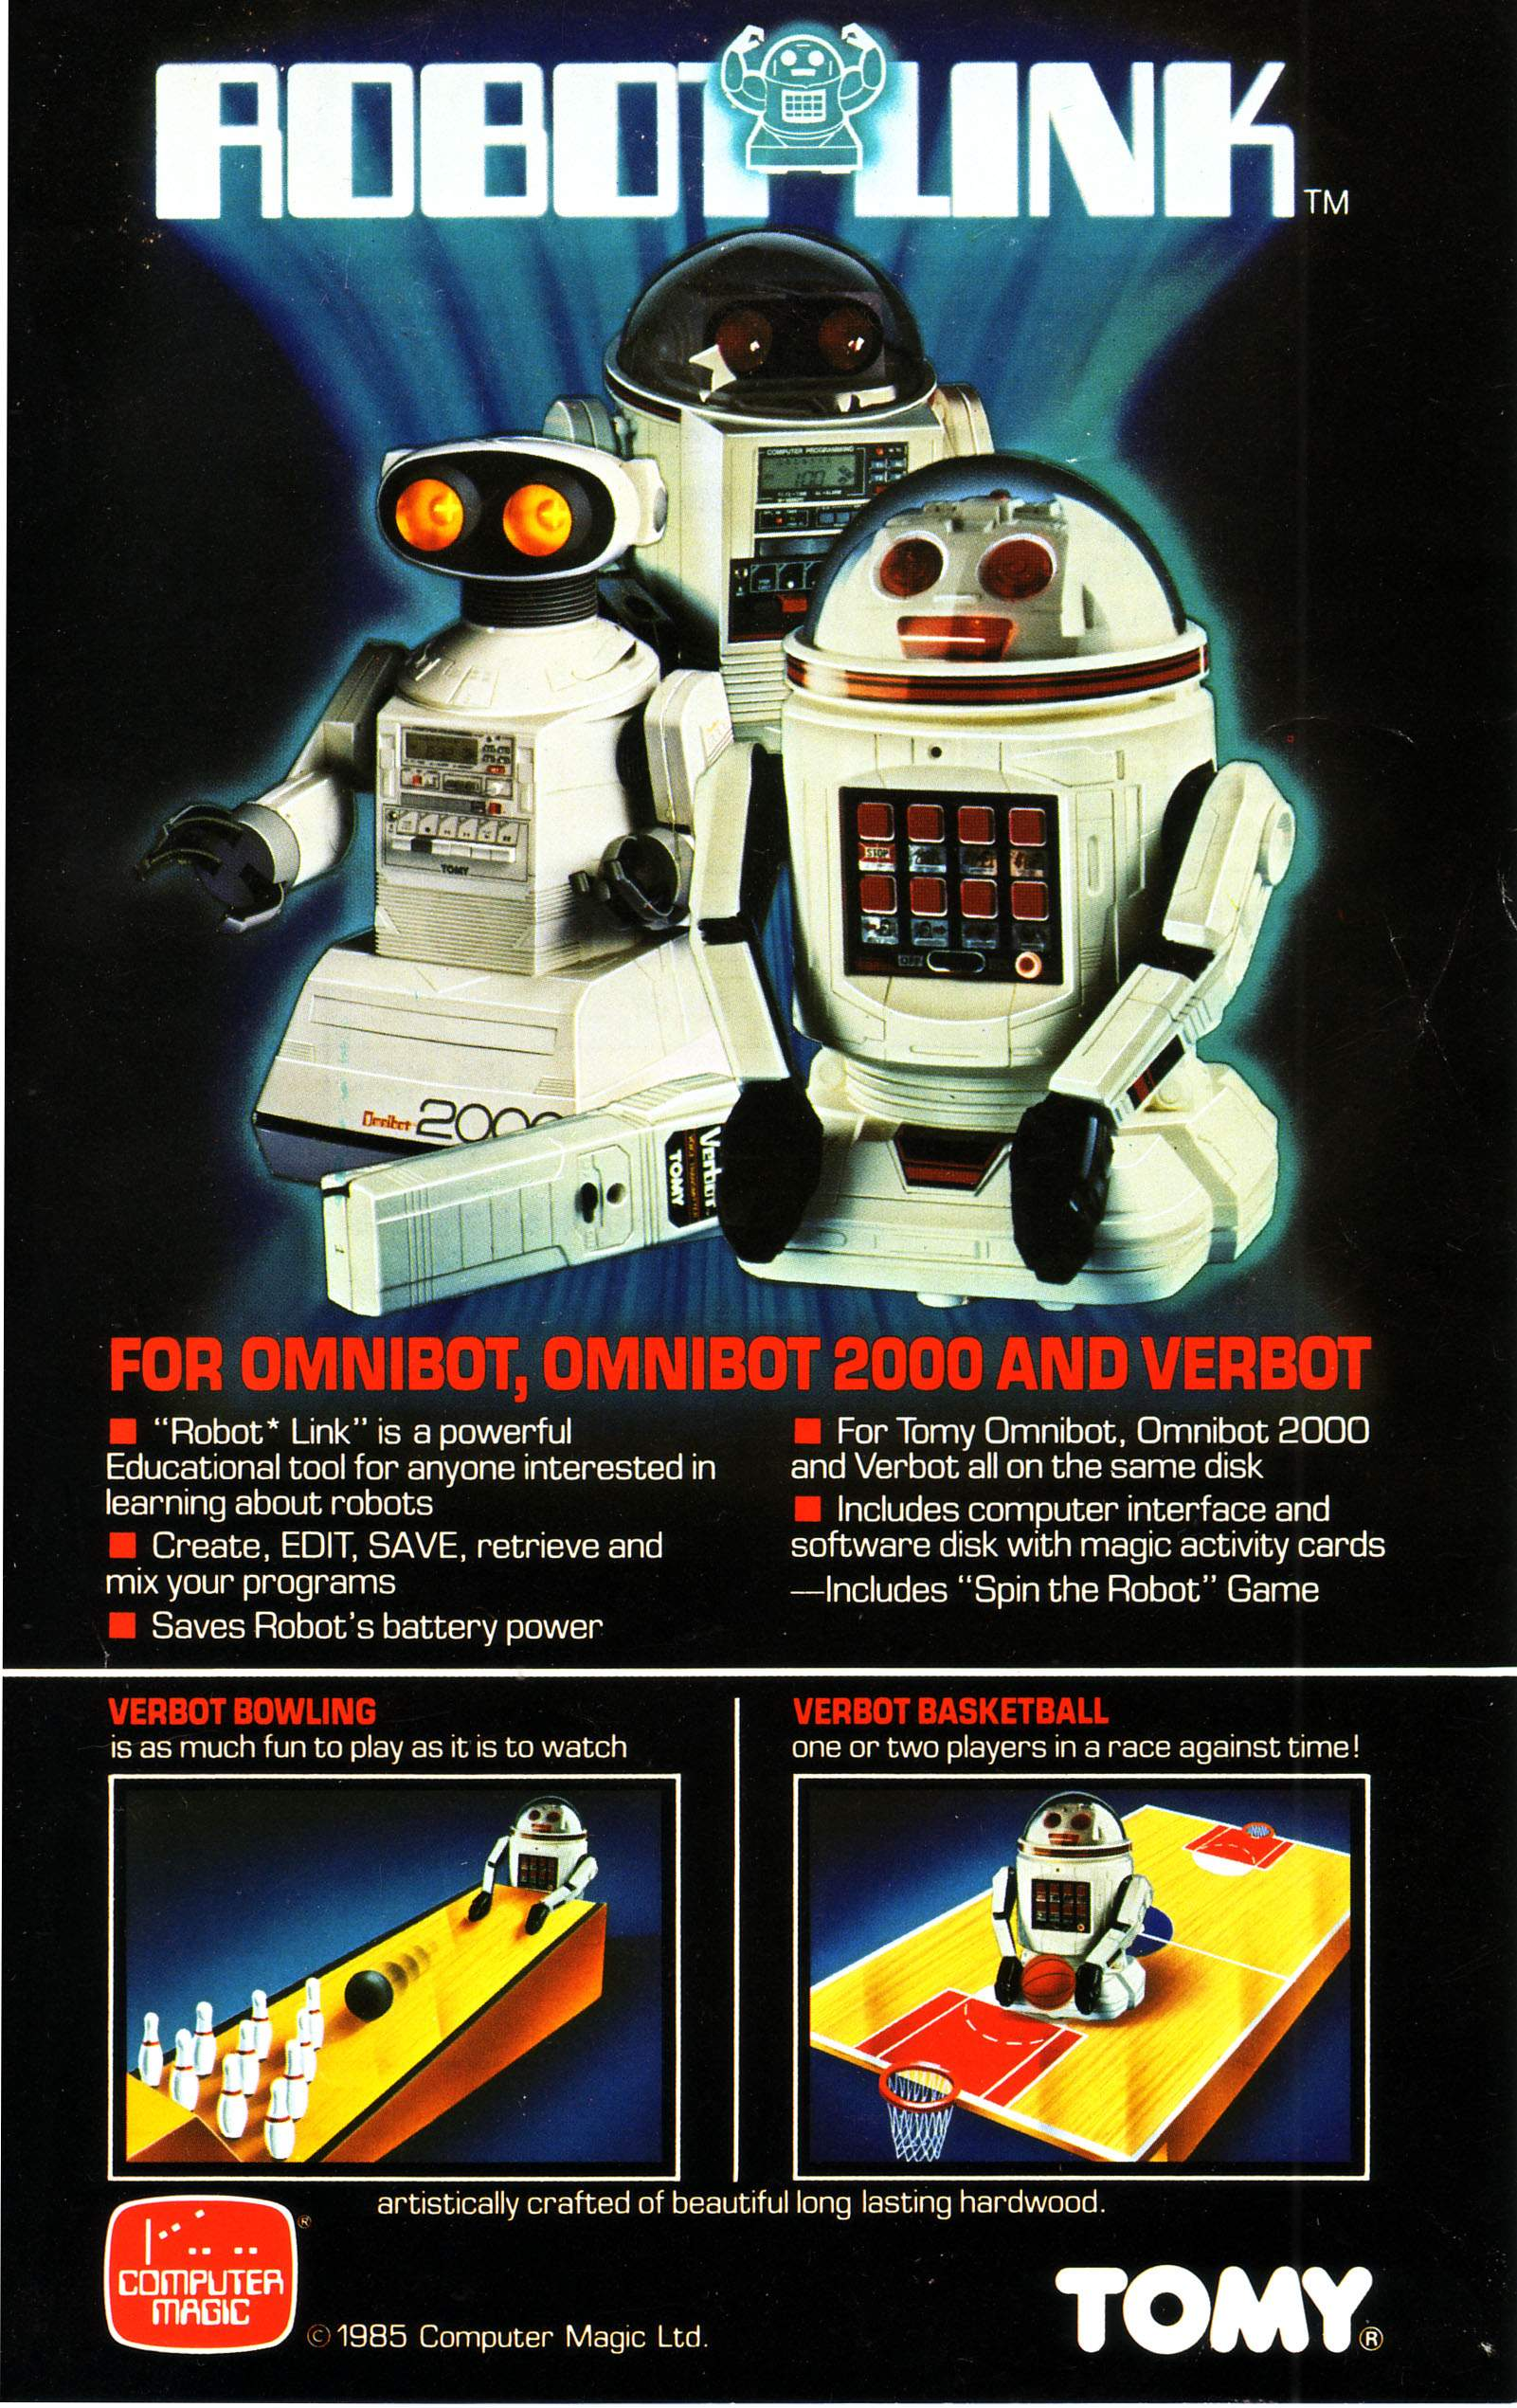 Robo Link by Computer Magic - The Old Robot's Web Site - Book-20